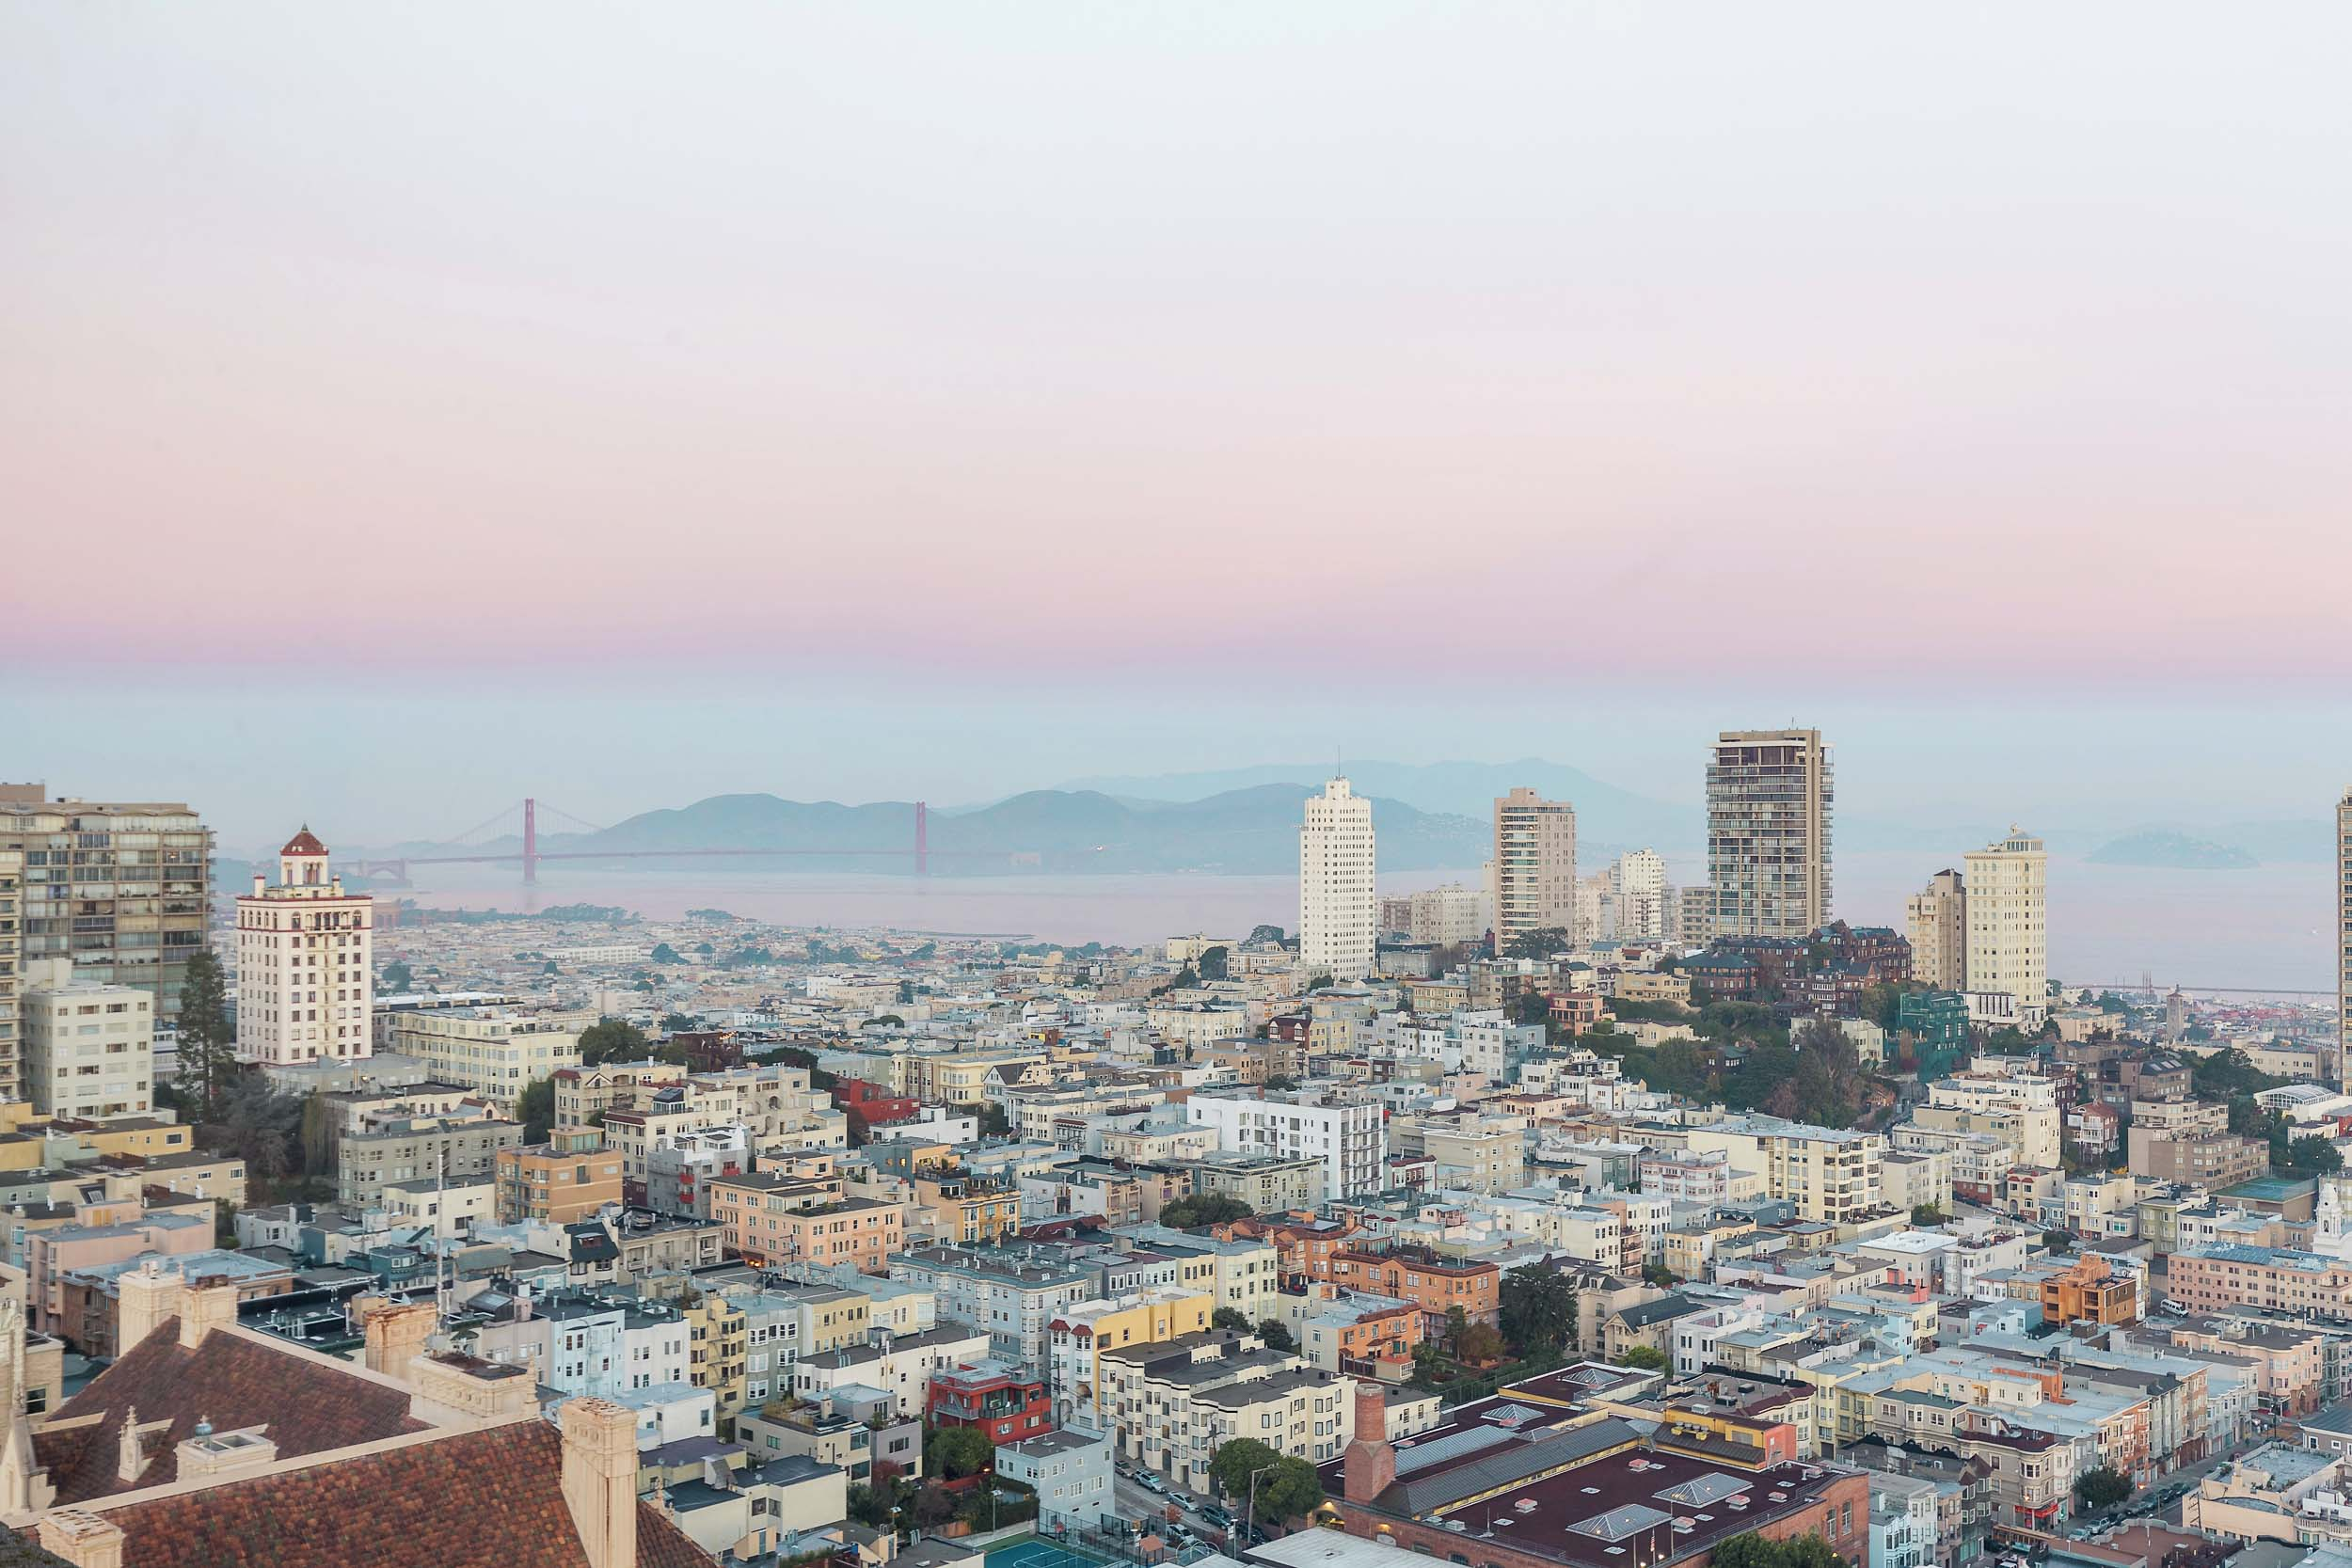 Jaw-dropping 270-degree views of San Francisco from the Fairmont San Francisco